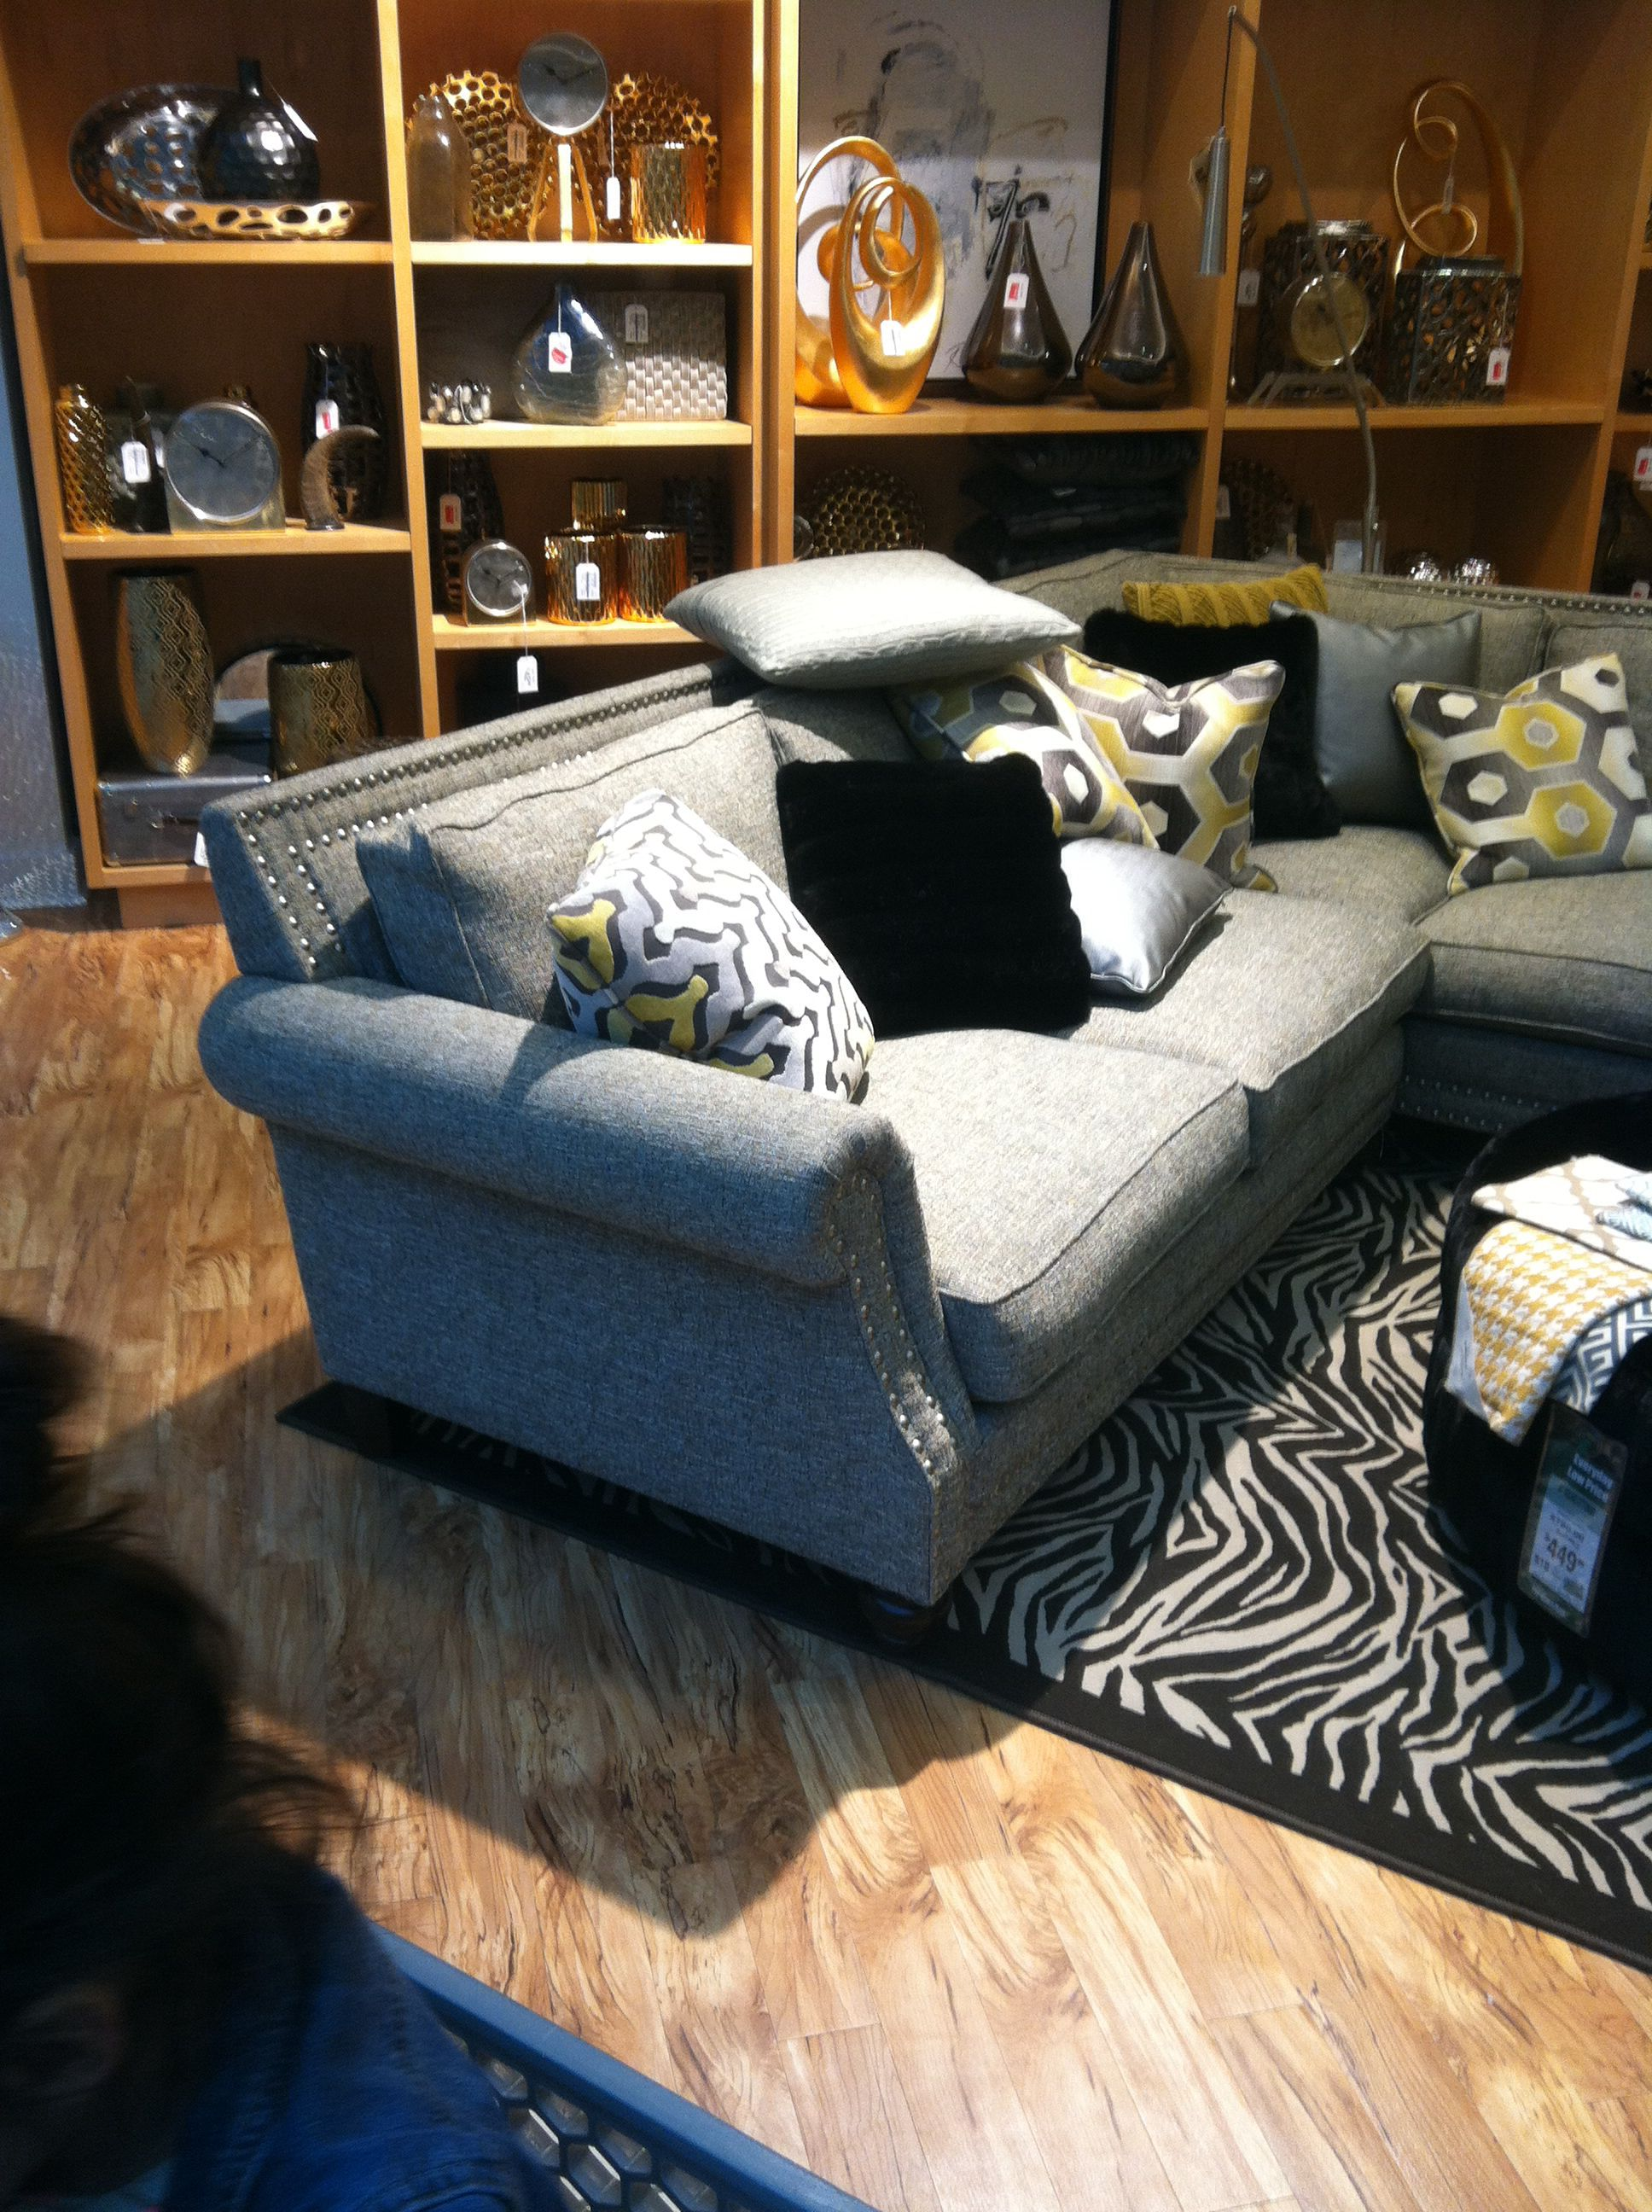 Robert michaels rochelle collection sofa in this color love 1899 99 1499 99 nfm